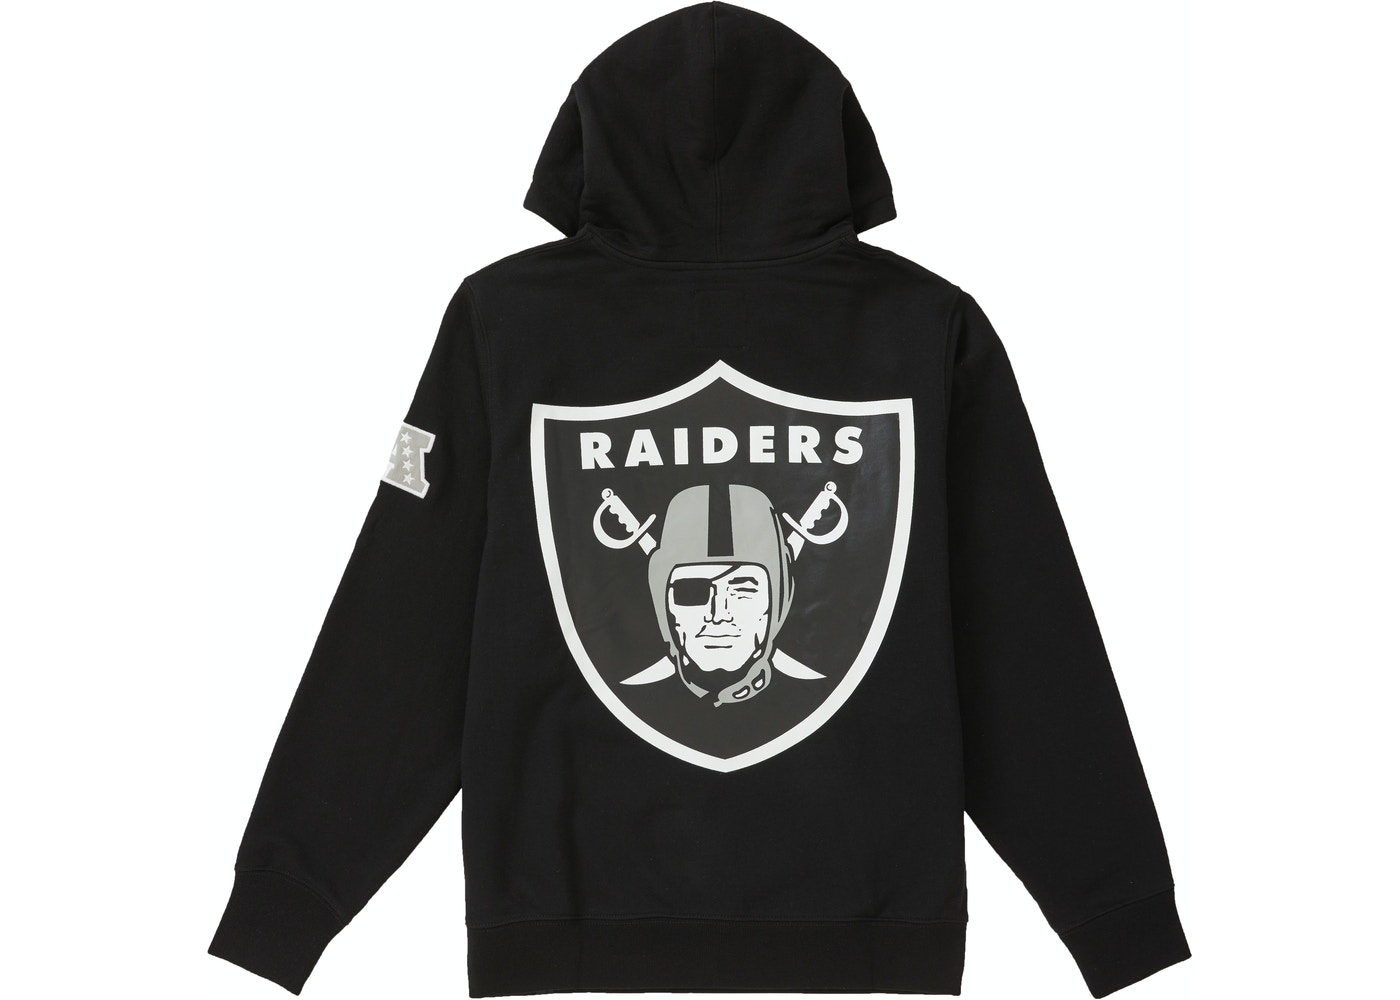 huge discount 10585 80fd9 Supreme NFL x Raiders x '47 Hooded Sweatshirt Black